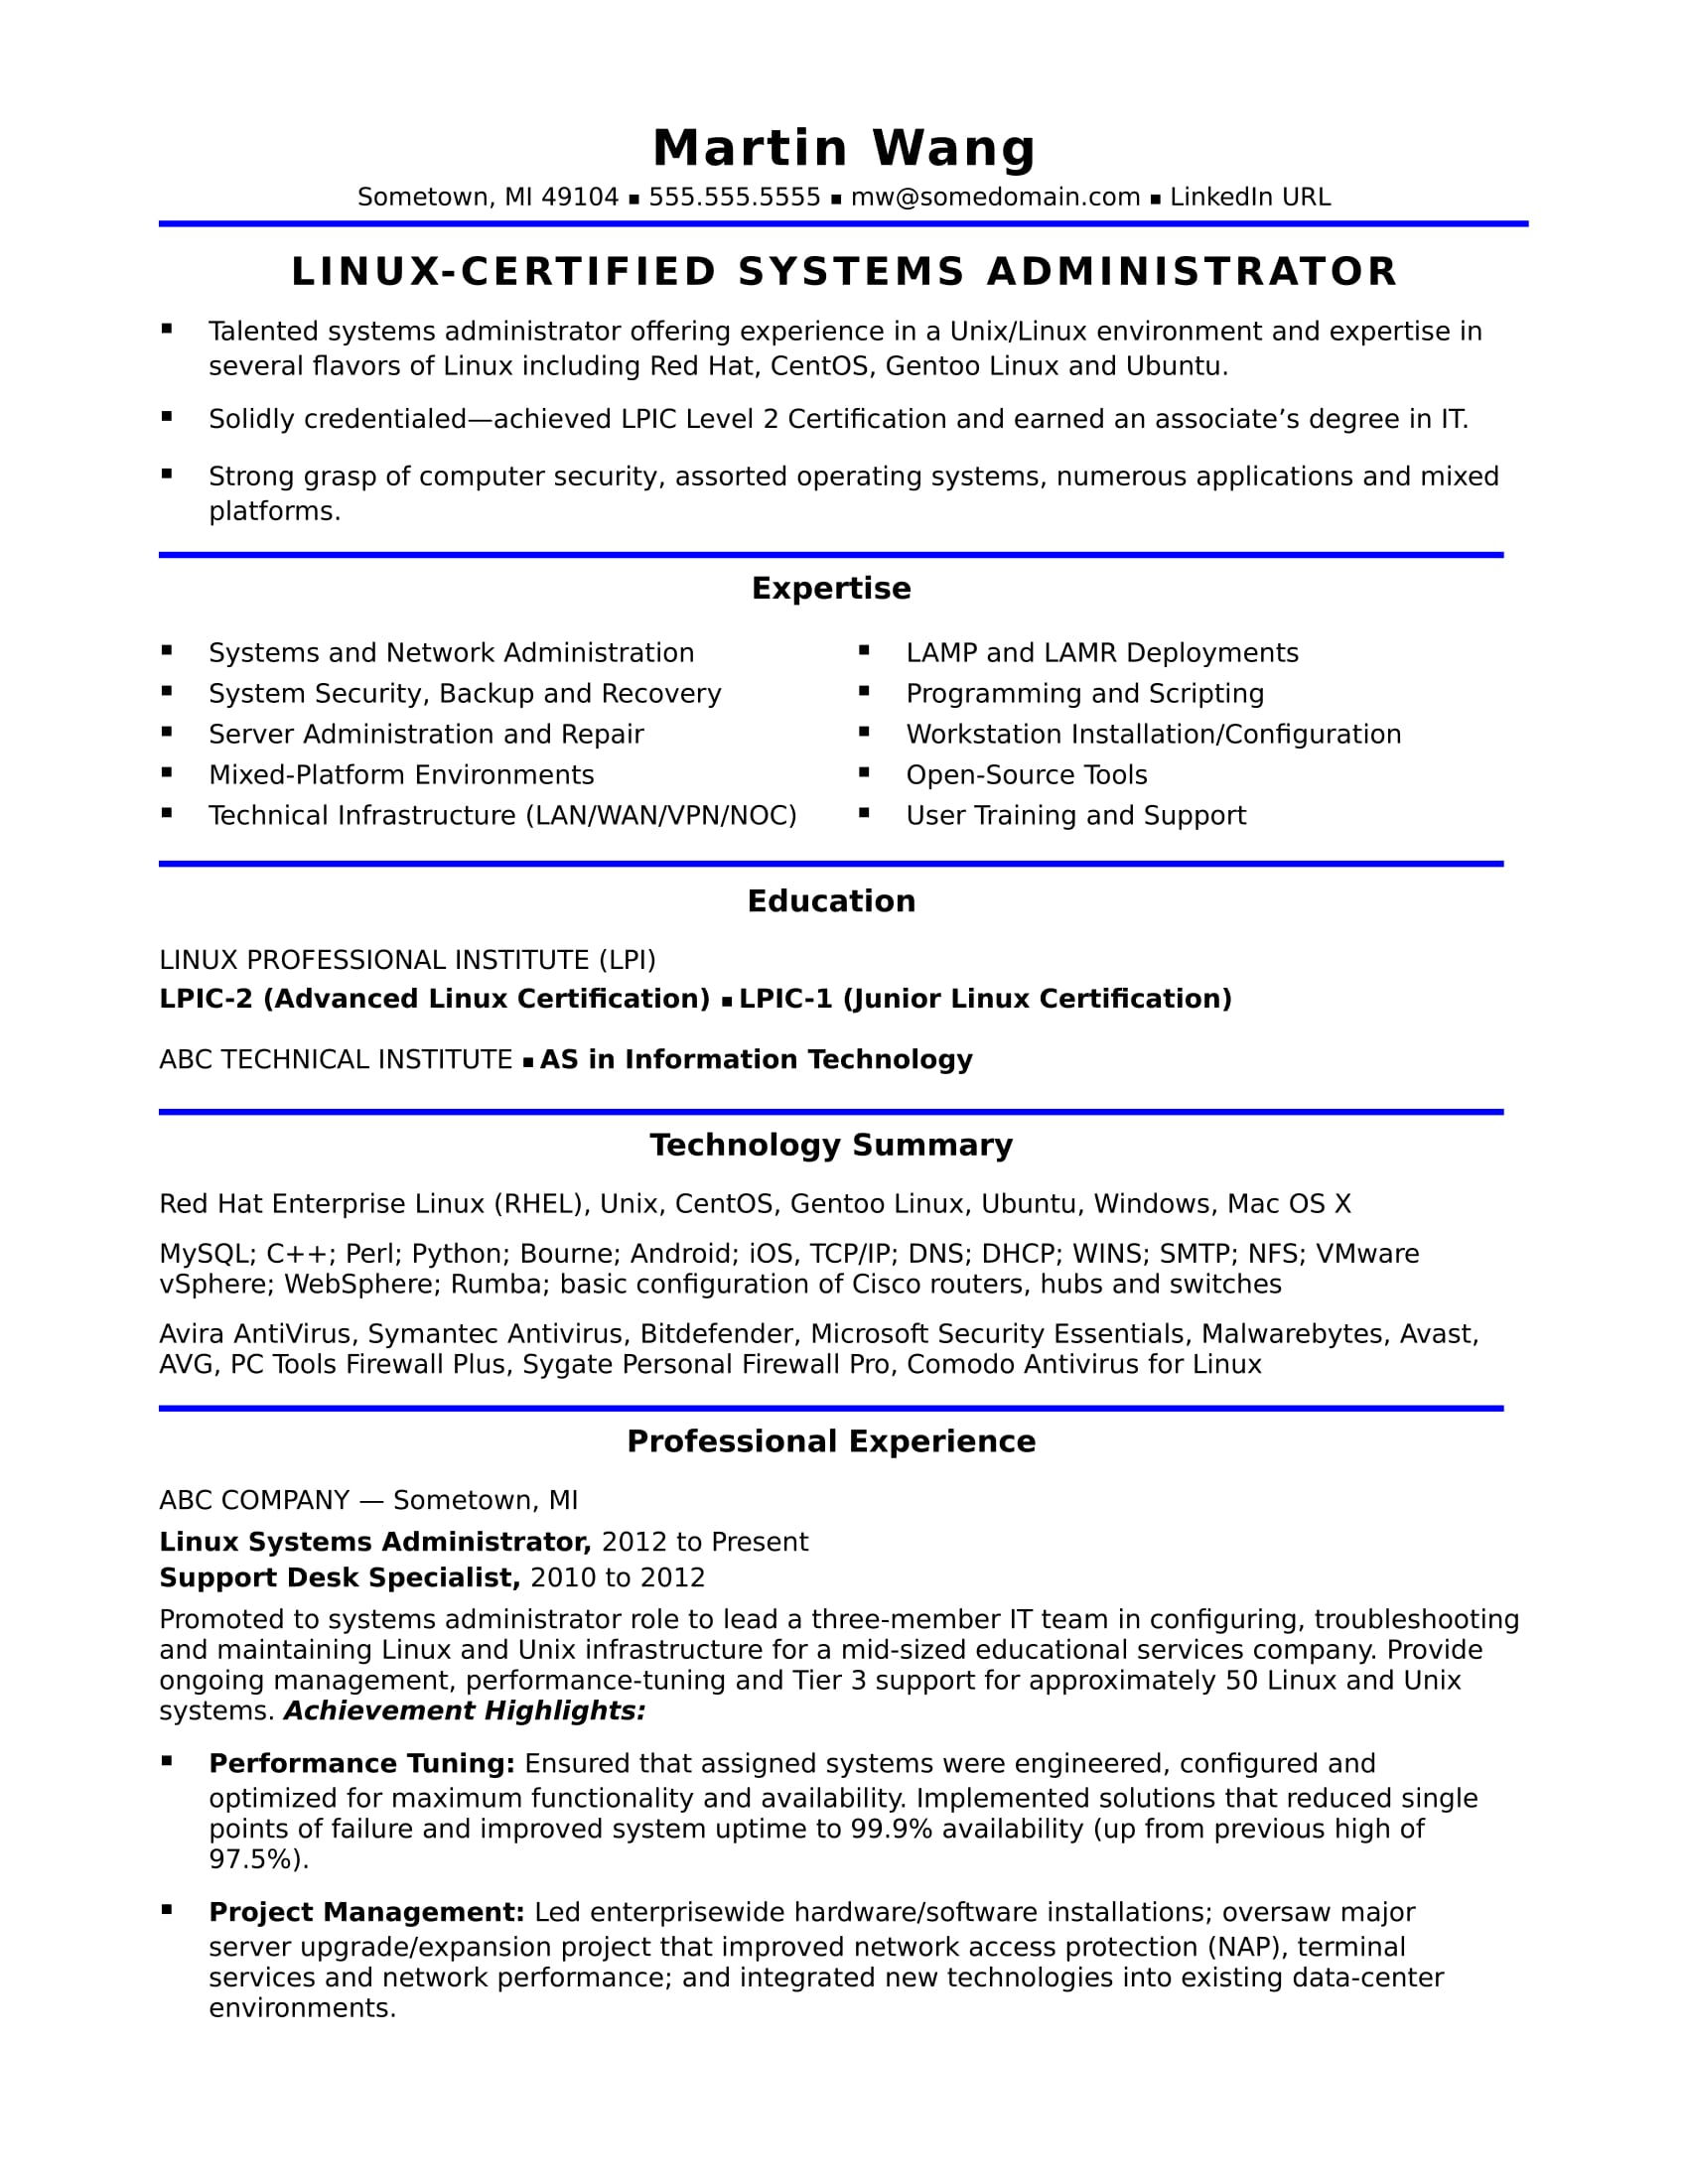 sample resume for midlevel systems administrator monster windows system experience best Resume Windows System Administrator Sample Resume Experience